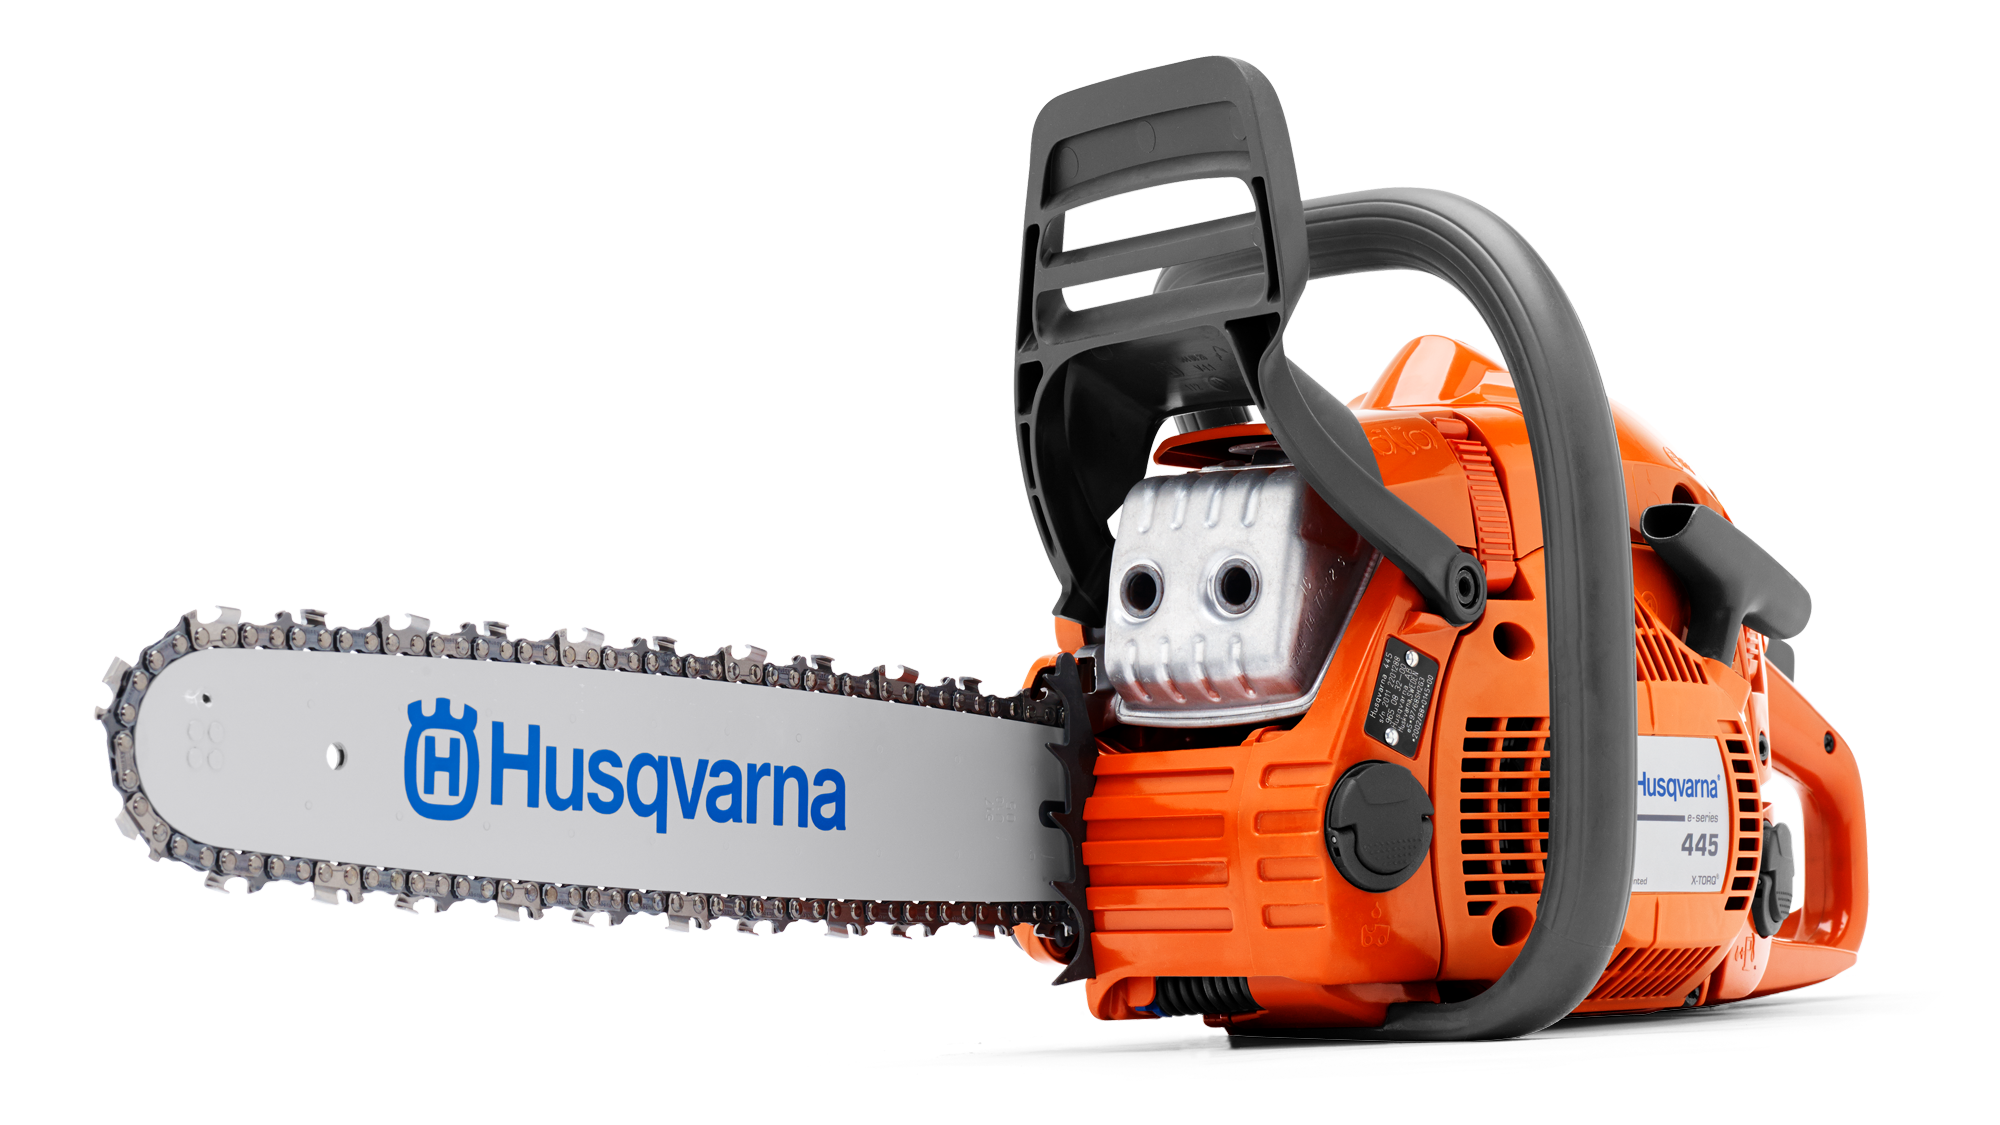 Image for 445e Gas Chainsaw                                                                                                                from HusqvarnaB2C